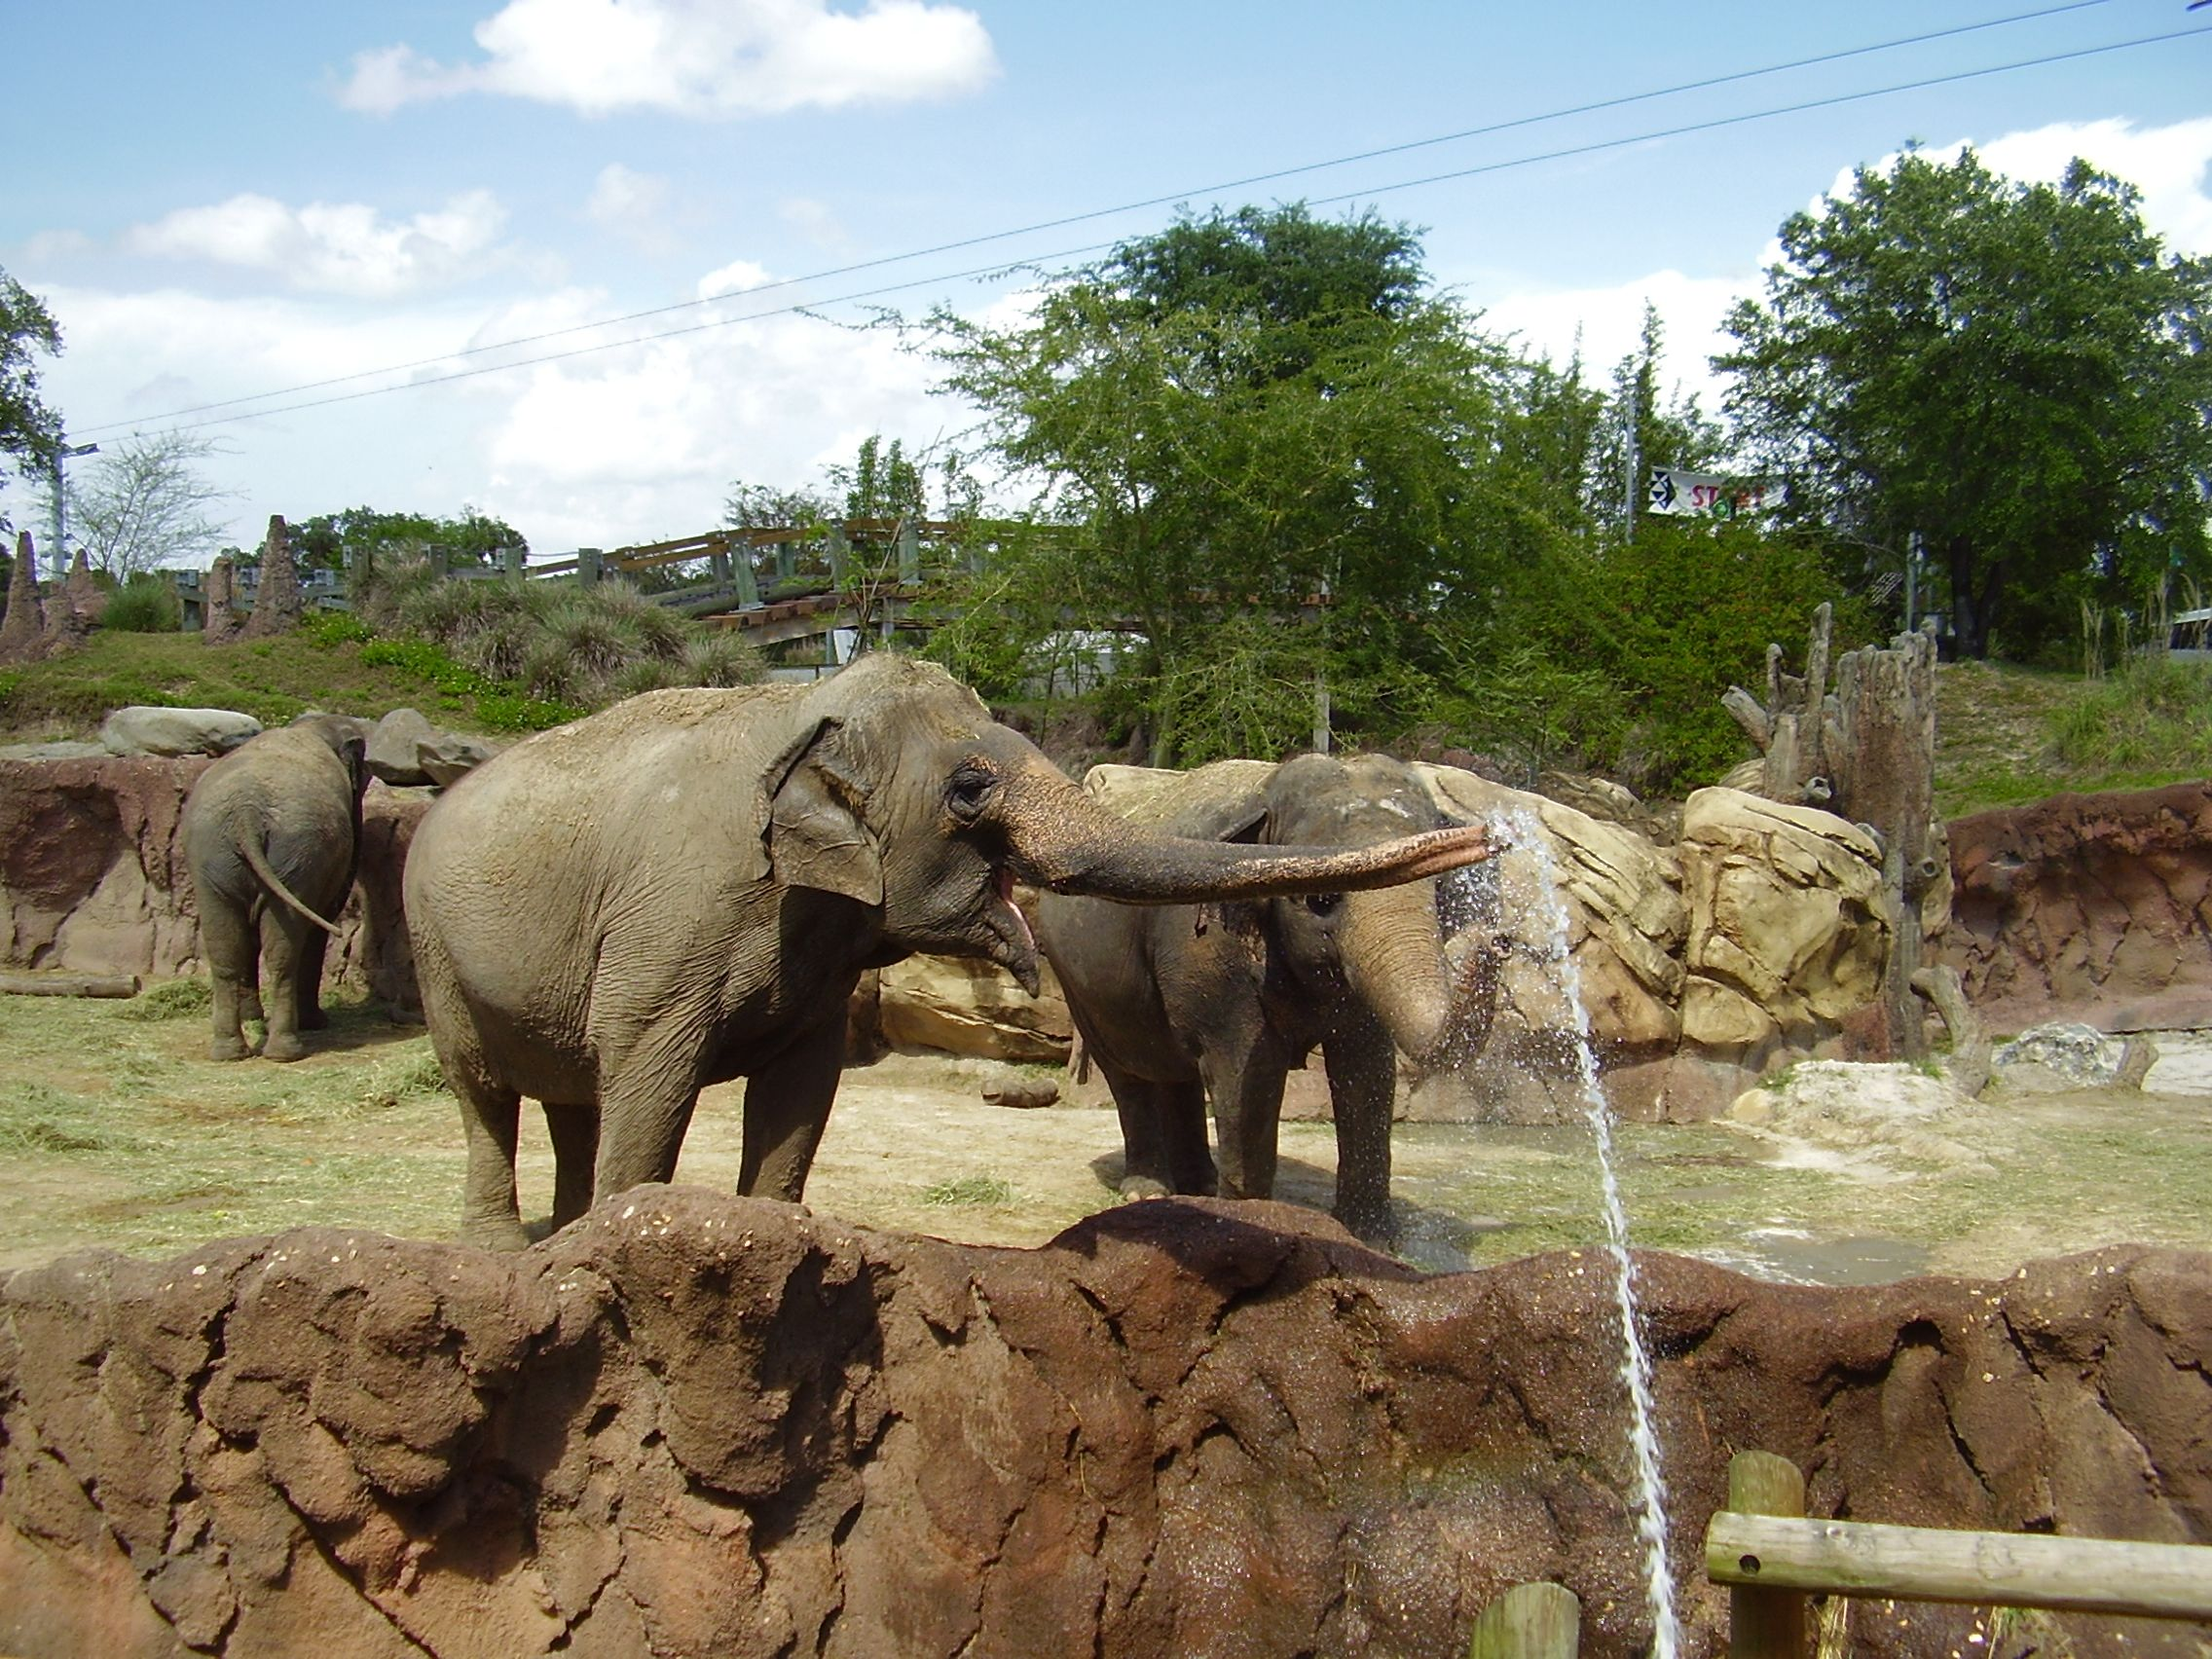 Elephant Washing at Busch Gardens Tampa bay